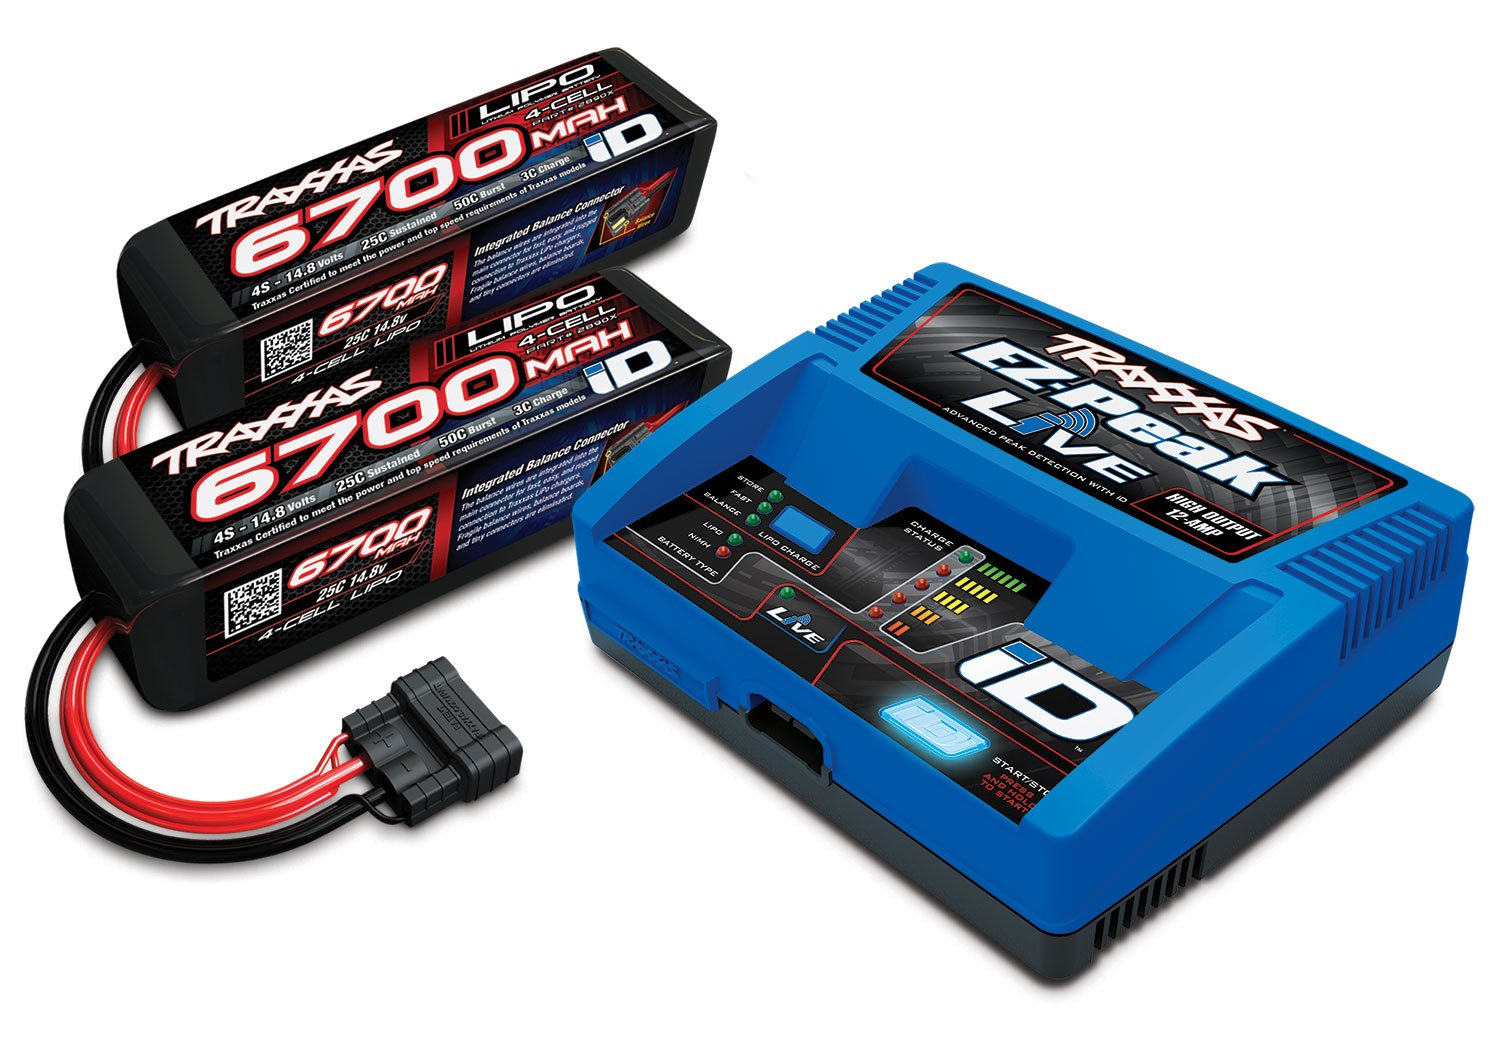 Traxxas 2993 Battery/Charger Completer Pack